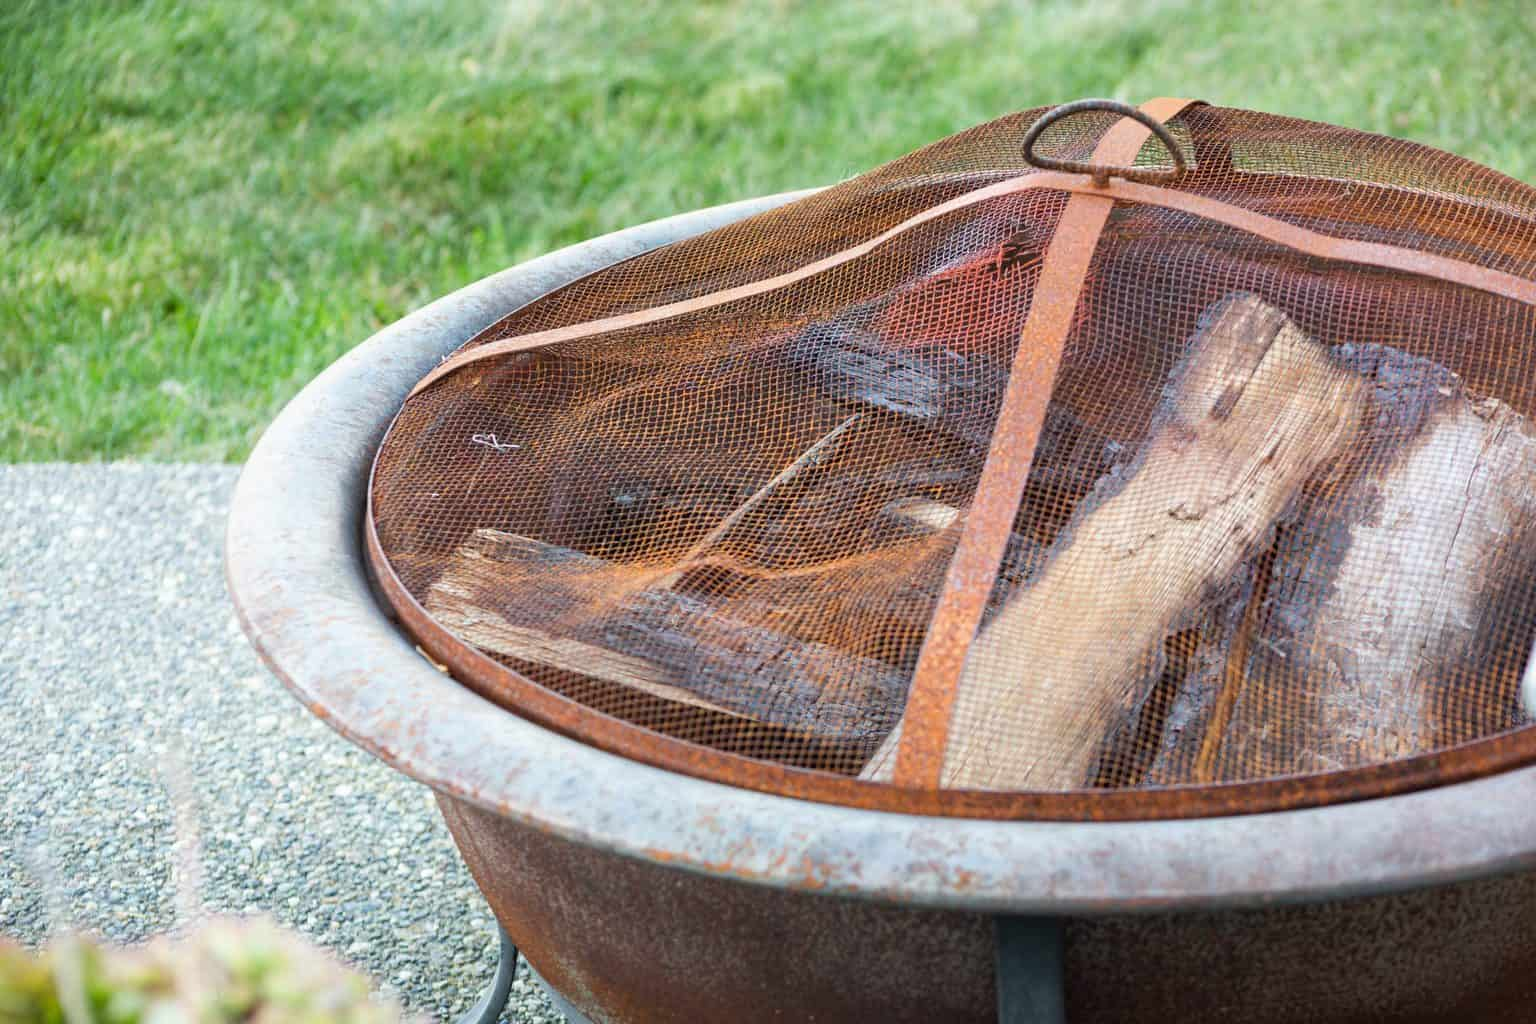 How To Remove Rust From An Outdoor Fire Pit Backyardscape